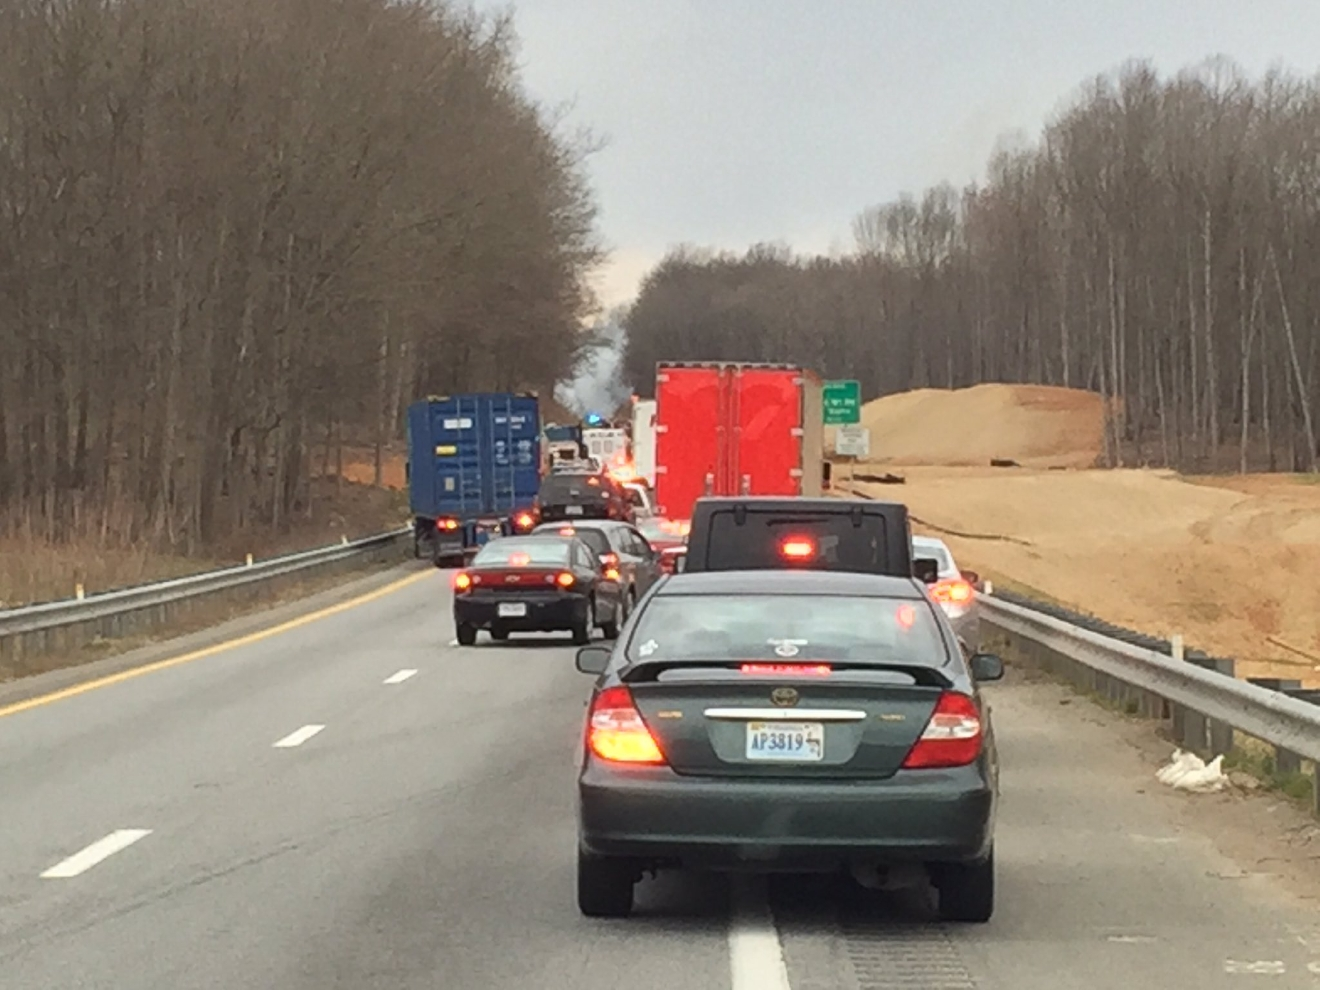 The vehicle fire shut down parts of Route 460 West (Photo: WSET)